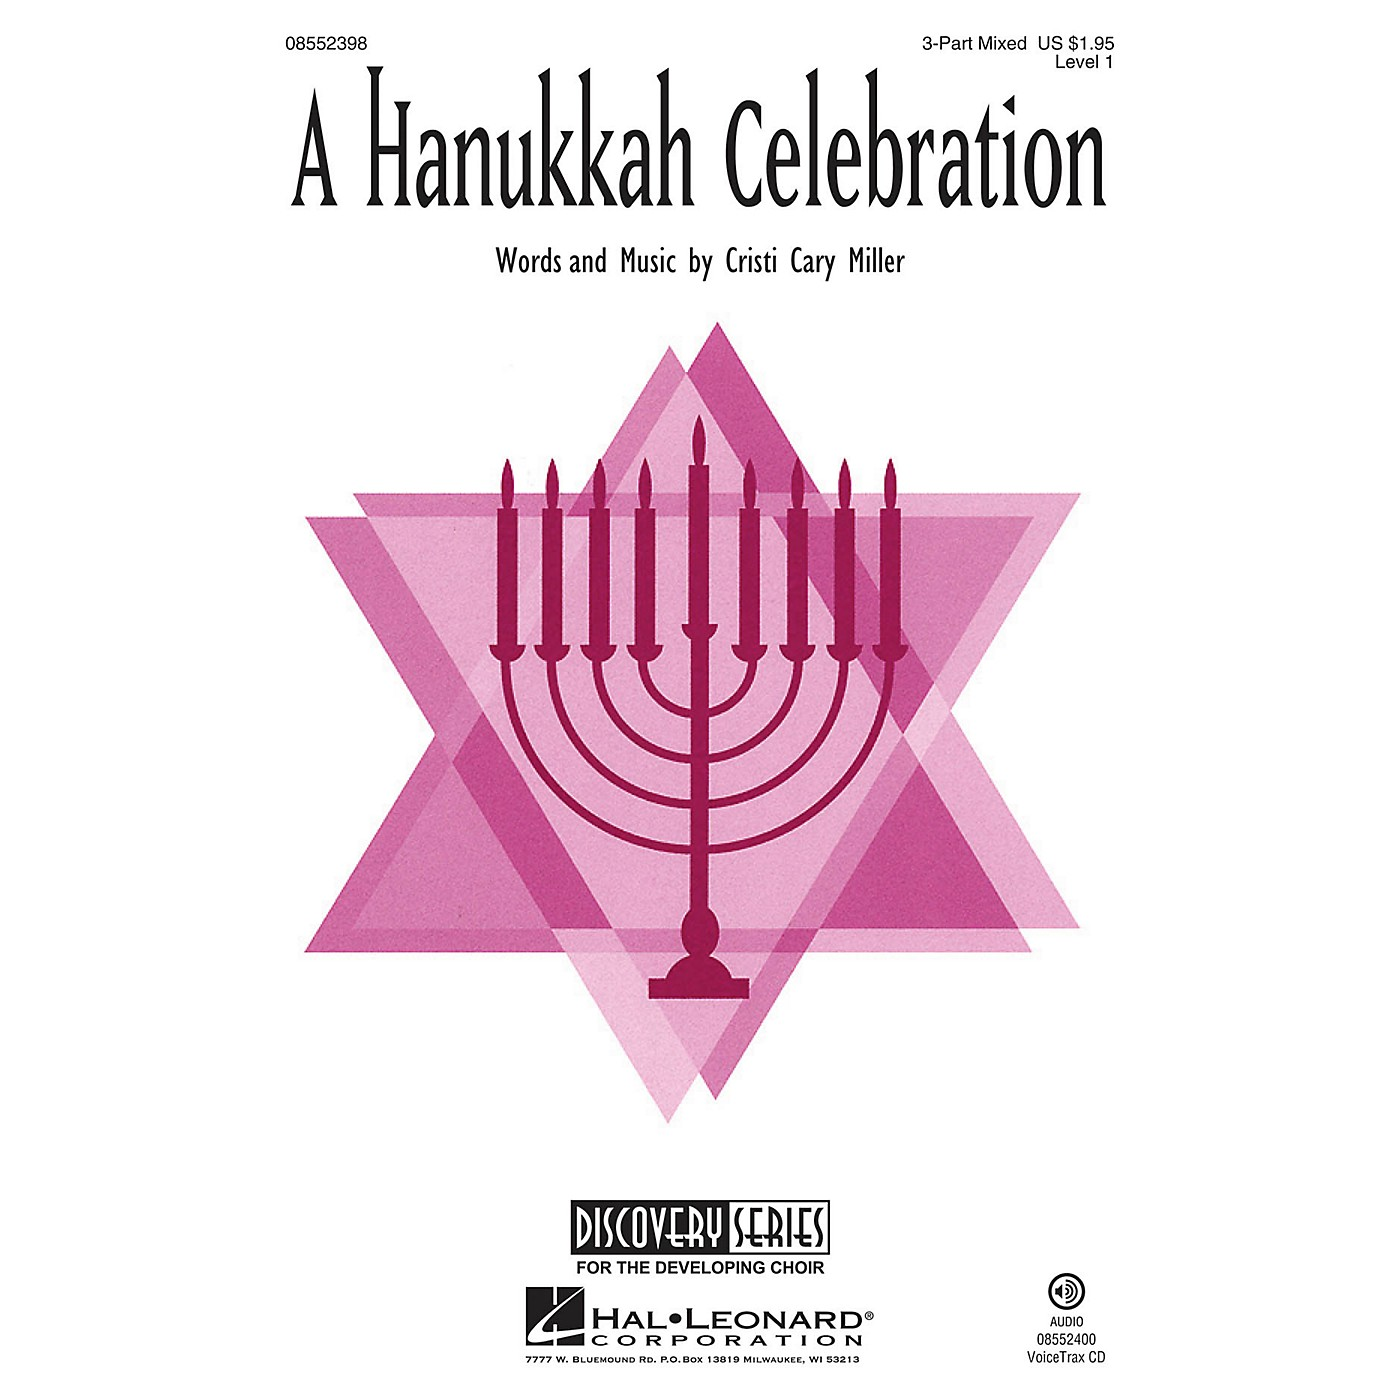 Hal Leonard A Hanukkah Celebration (Discovery Level 1) VoiceTrax CD Composed by Cristi Cary Miller thumbnail